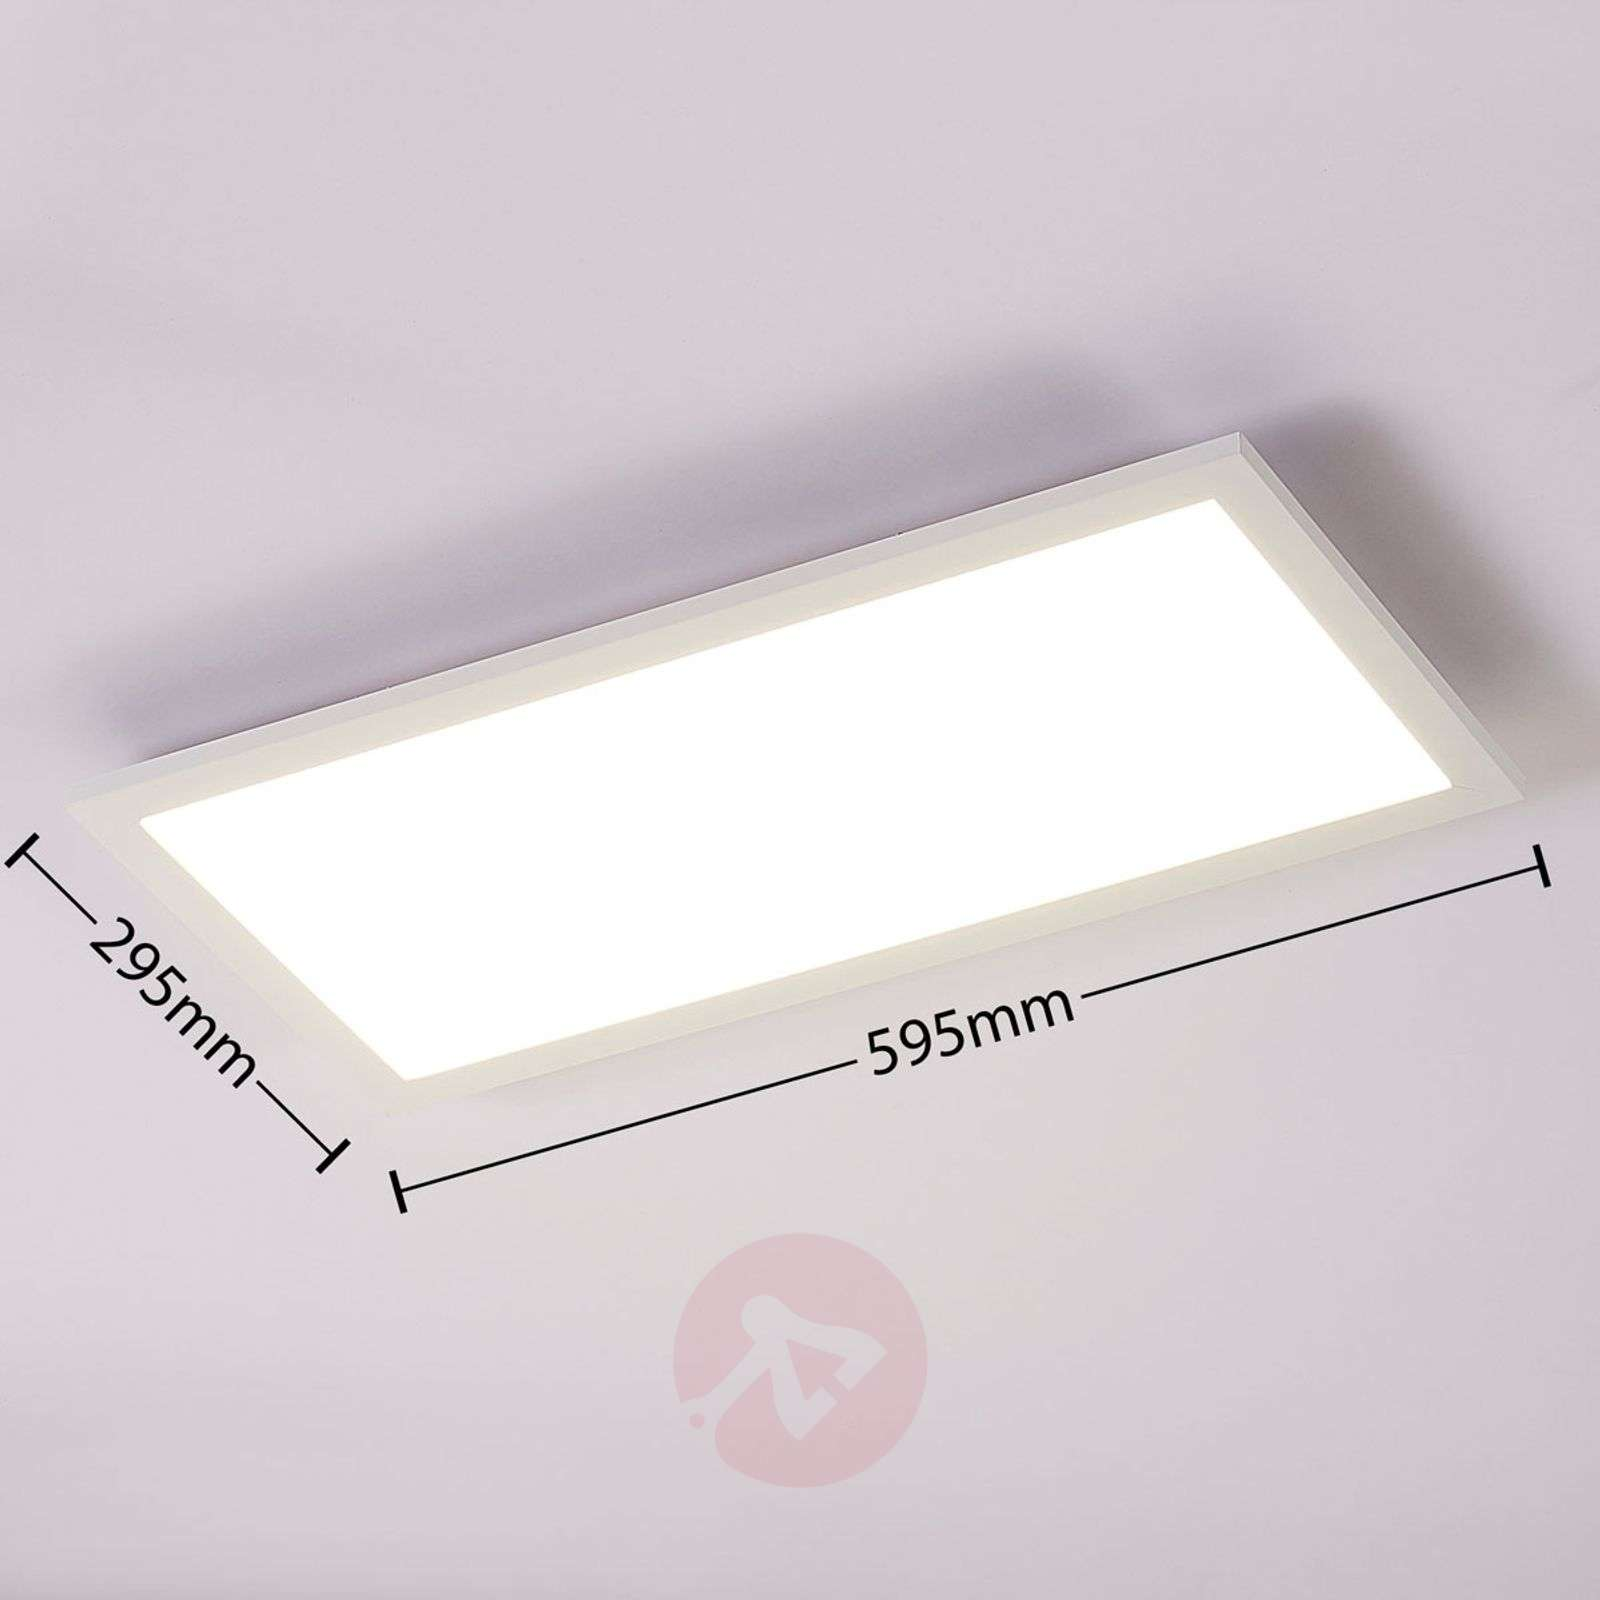 Lysander white LED panel dimmable w remote control-9621548-011